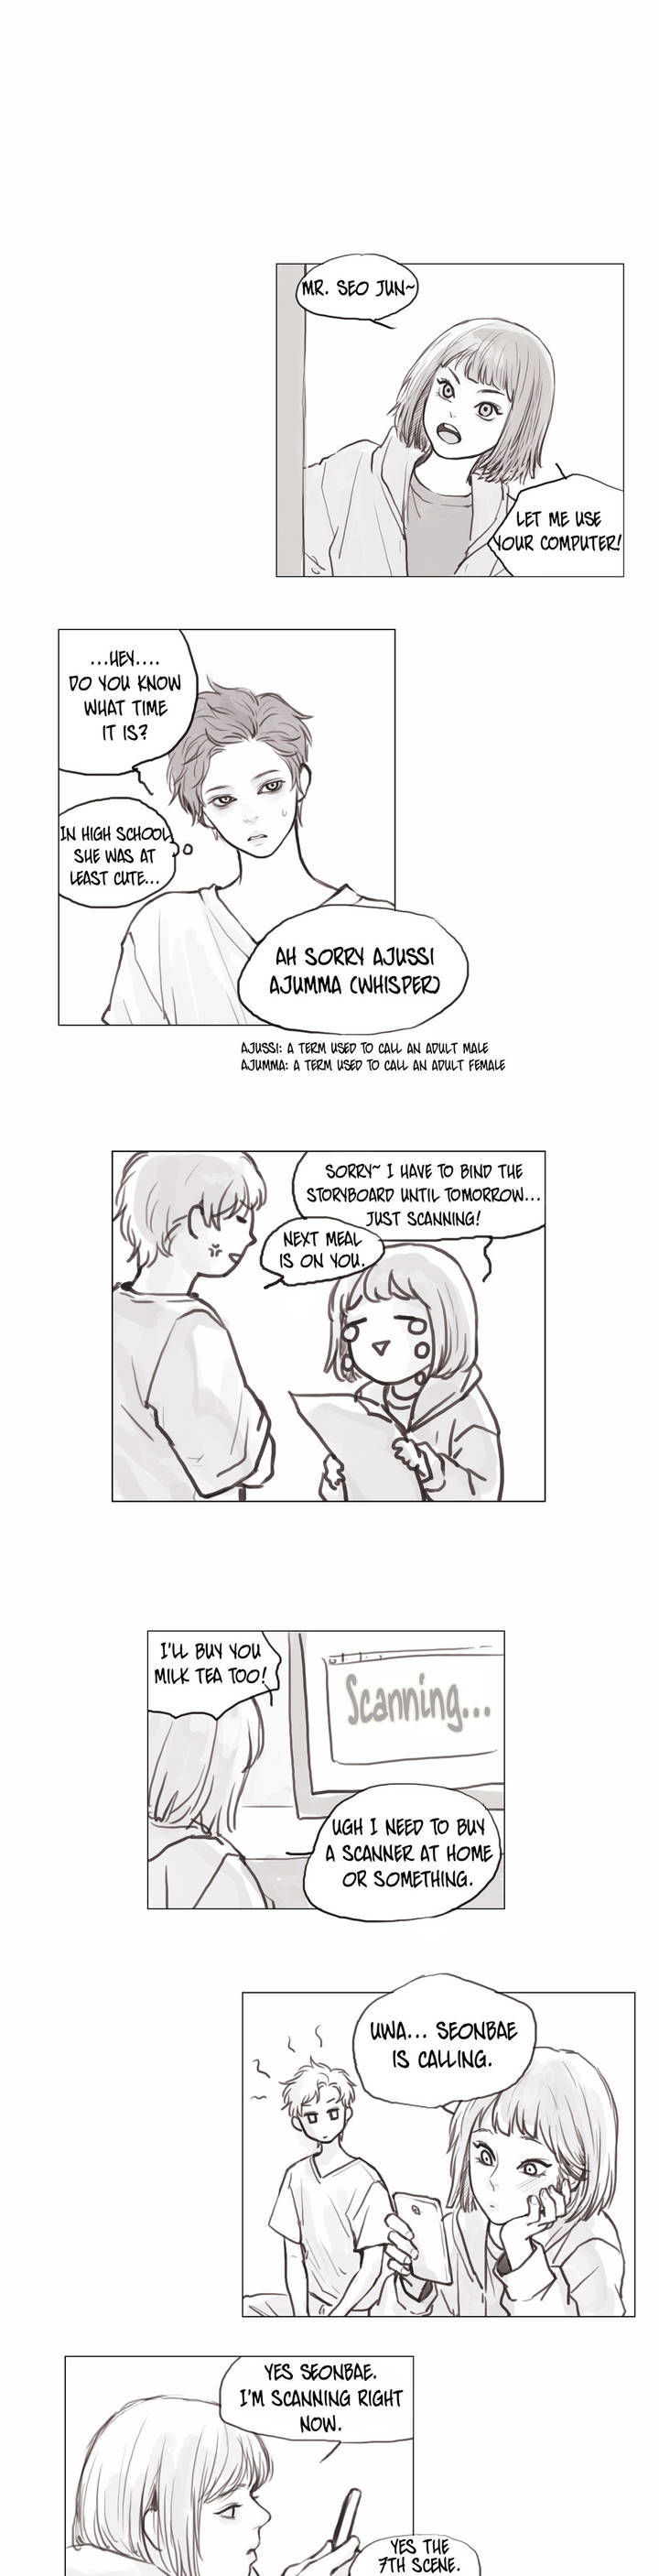 Strawberry And Milk Tea - Chapter 6